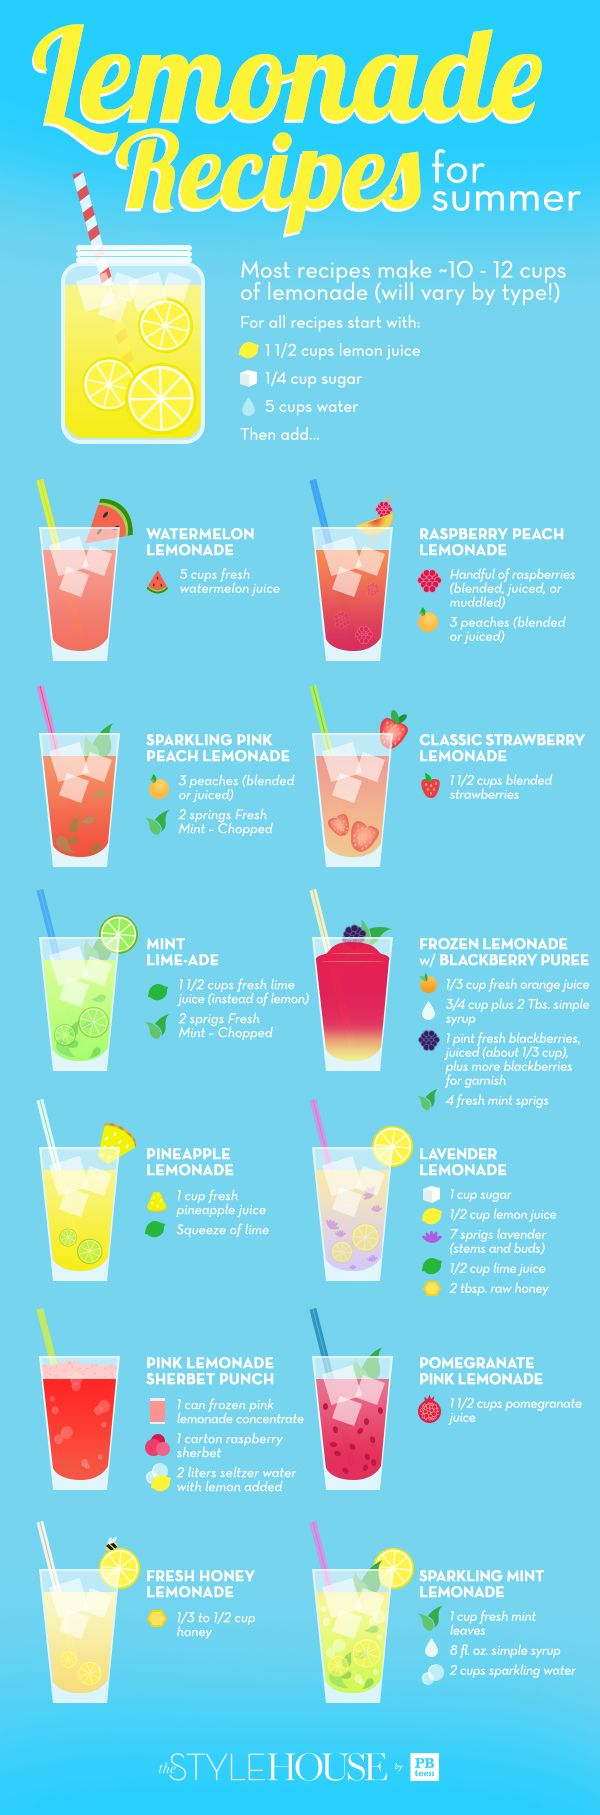 Here are 12 to die for lemonade recipes to try this summer, courtesy of The Style House!